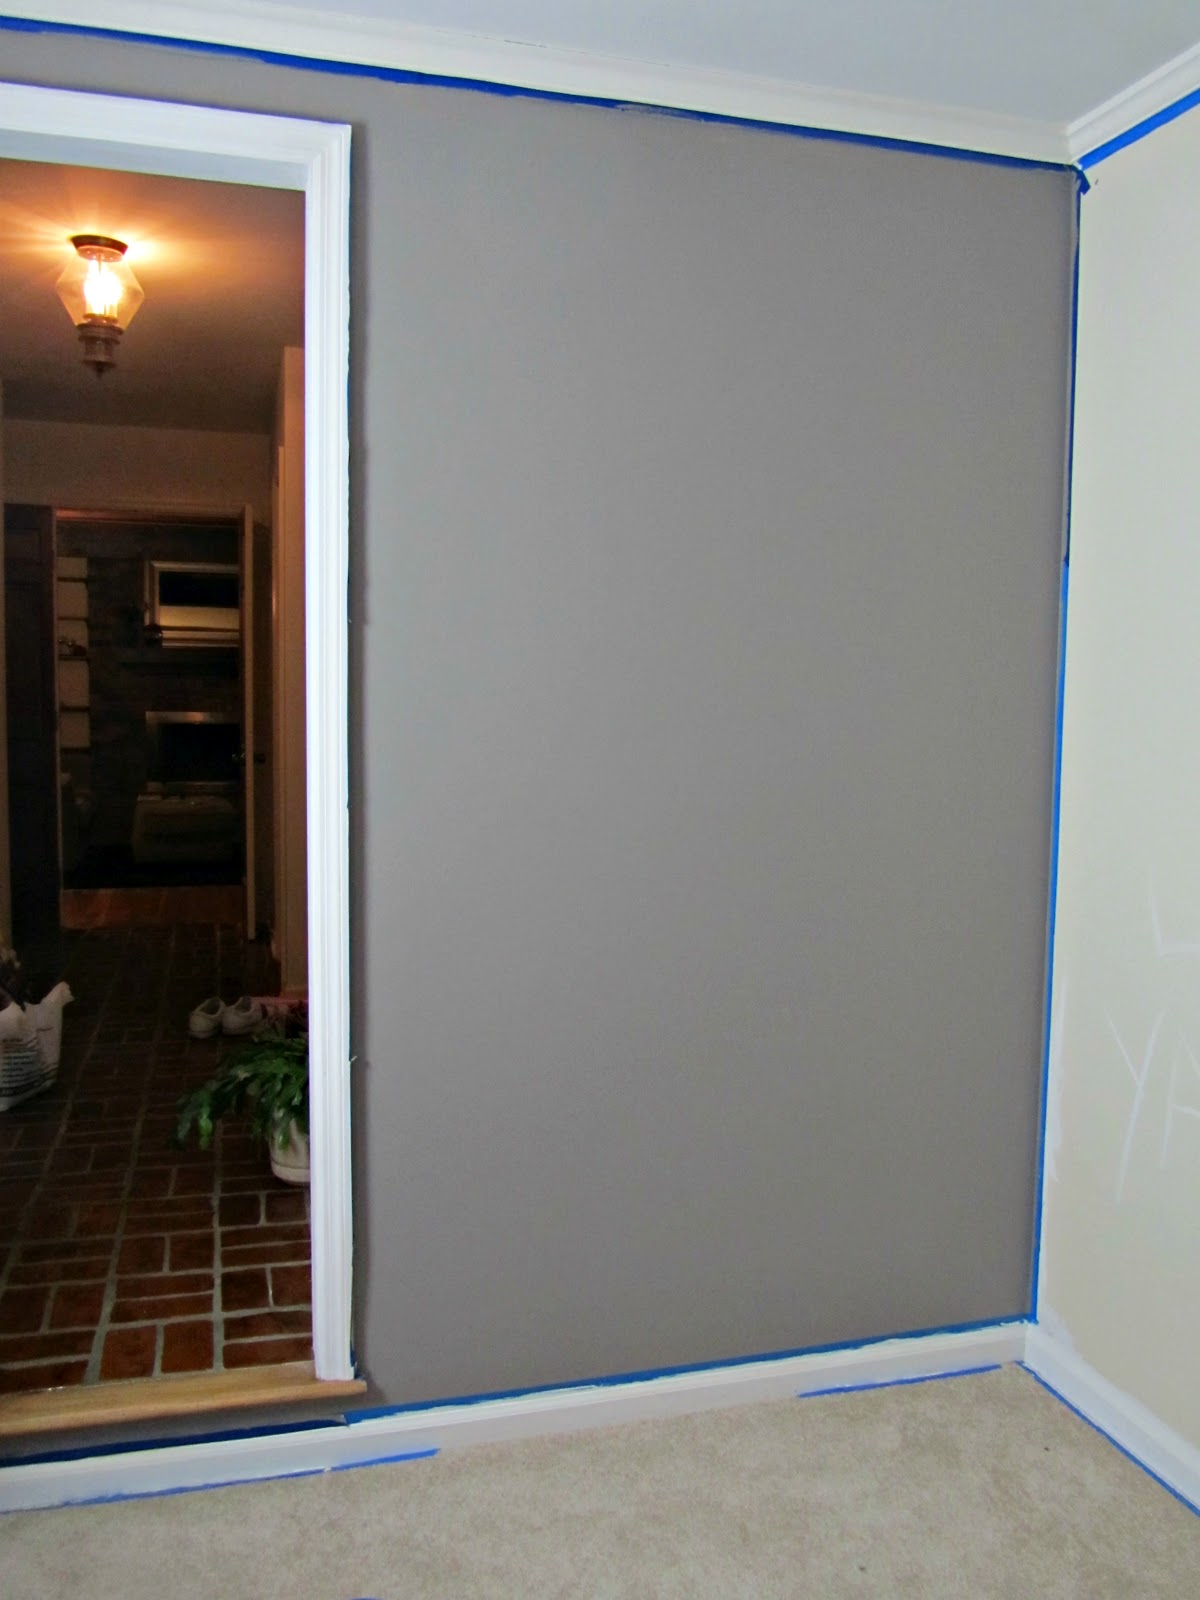 Captivating After: Nice Behr Fashion Gray.. Yay!